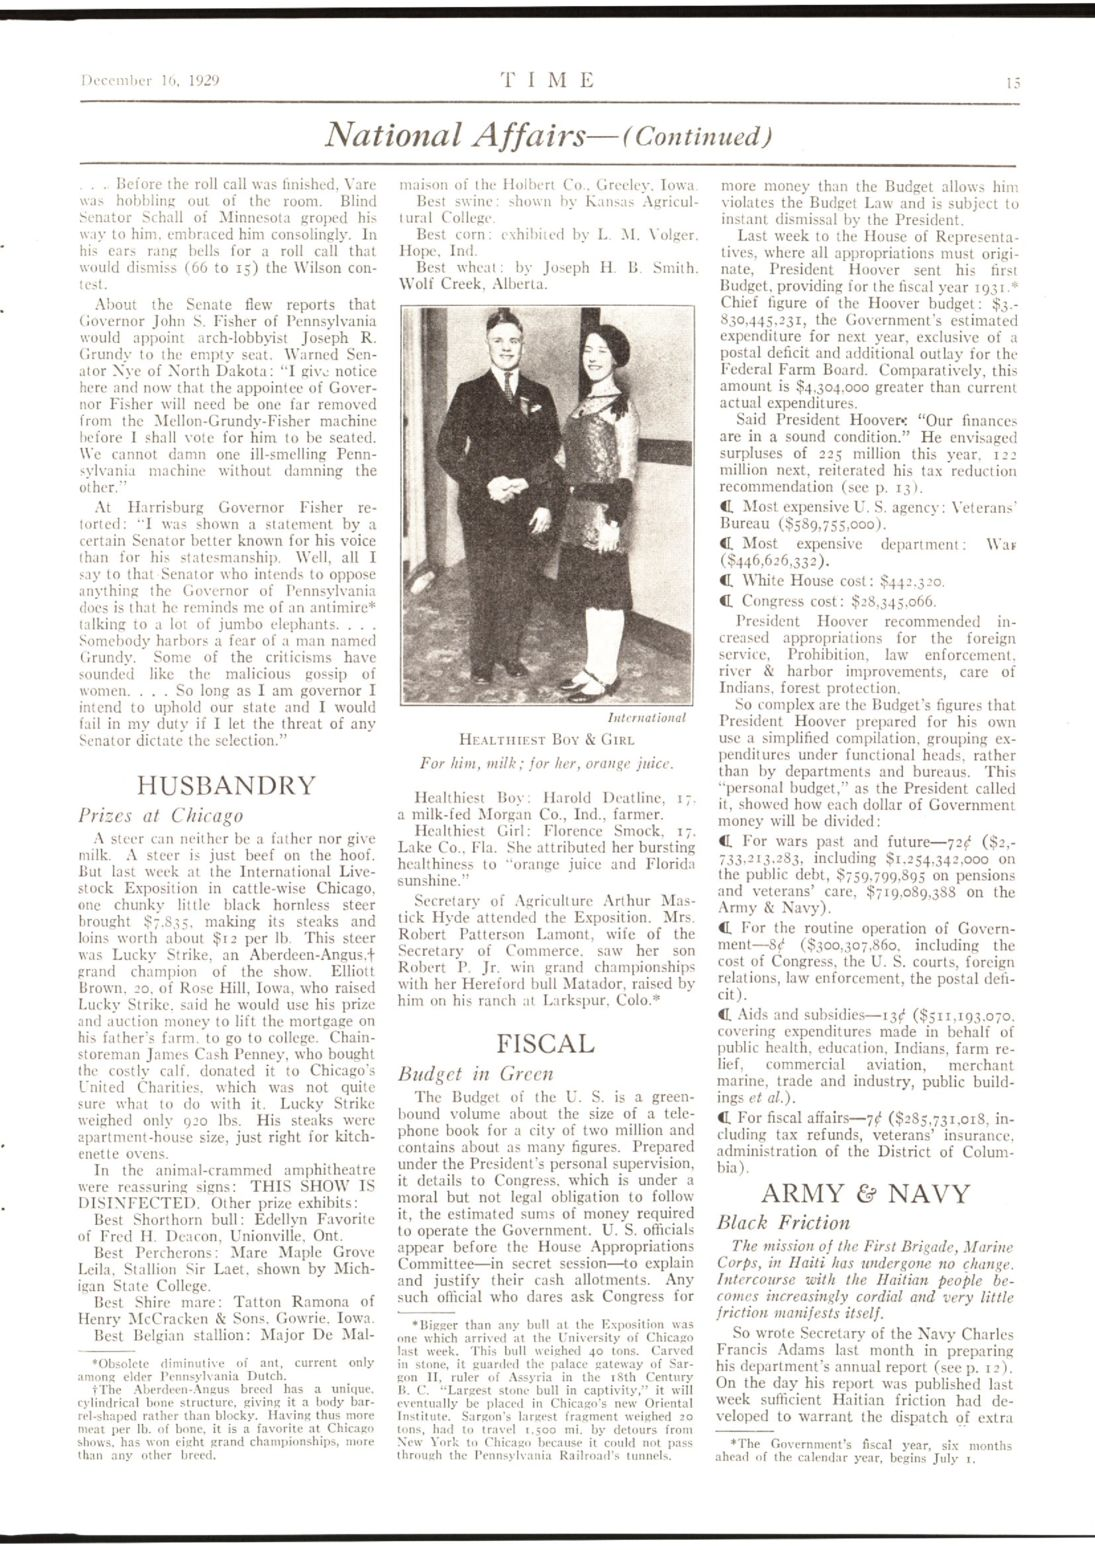 Index of  TIMEvault 1929 1929-12-16 02fd722849349